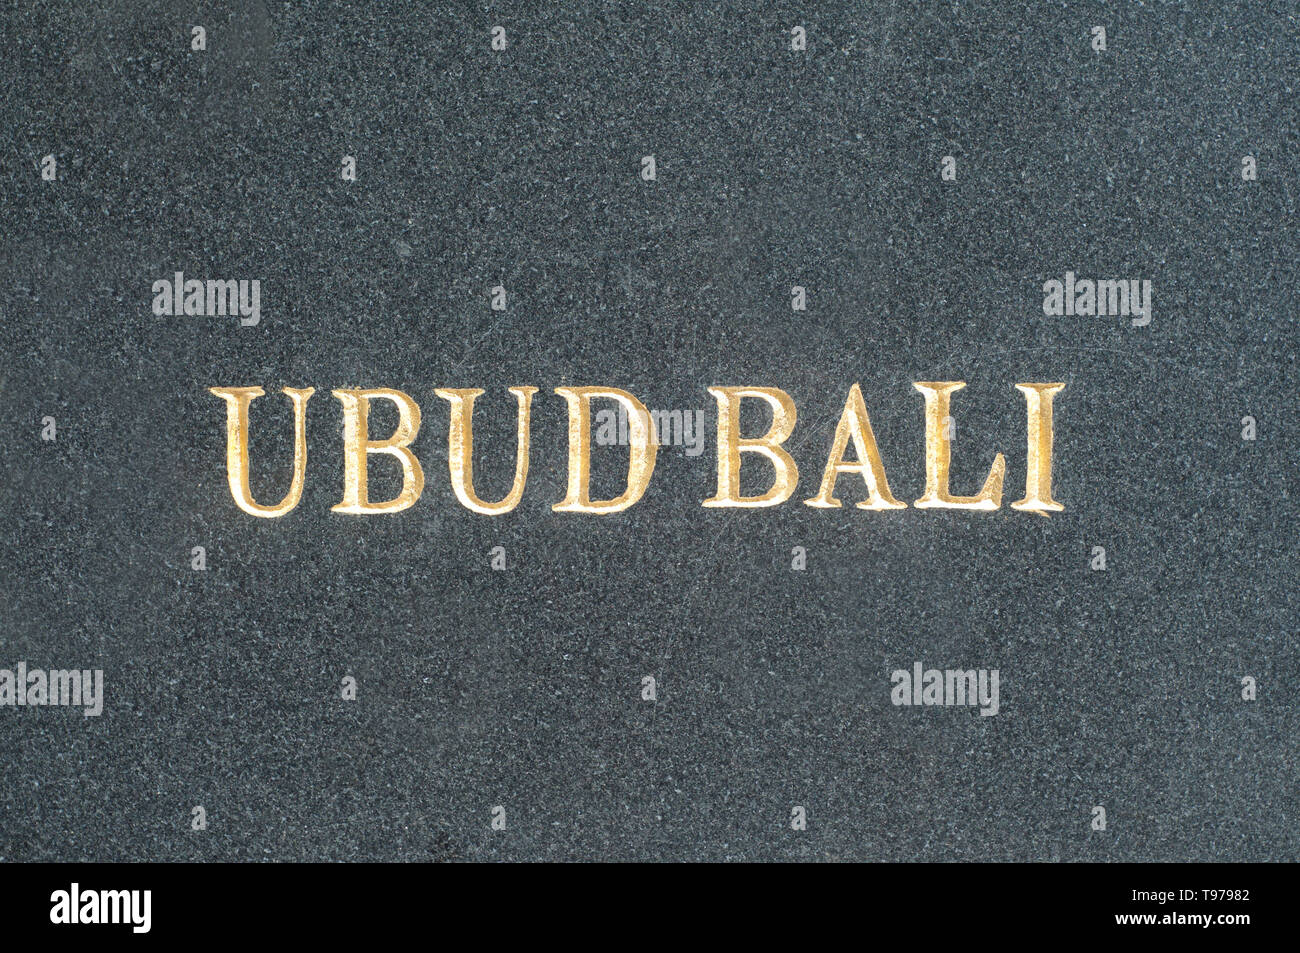 Gilded Ubud-Bali inscription on a black marble slab located in the center of Ubud, Bali, Indonesia - Stock Image